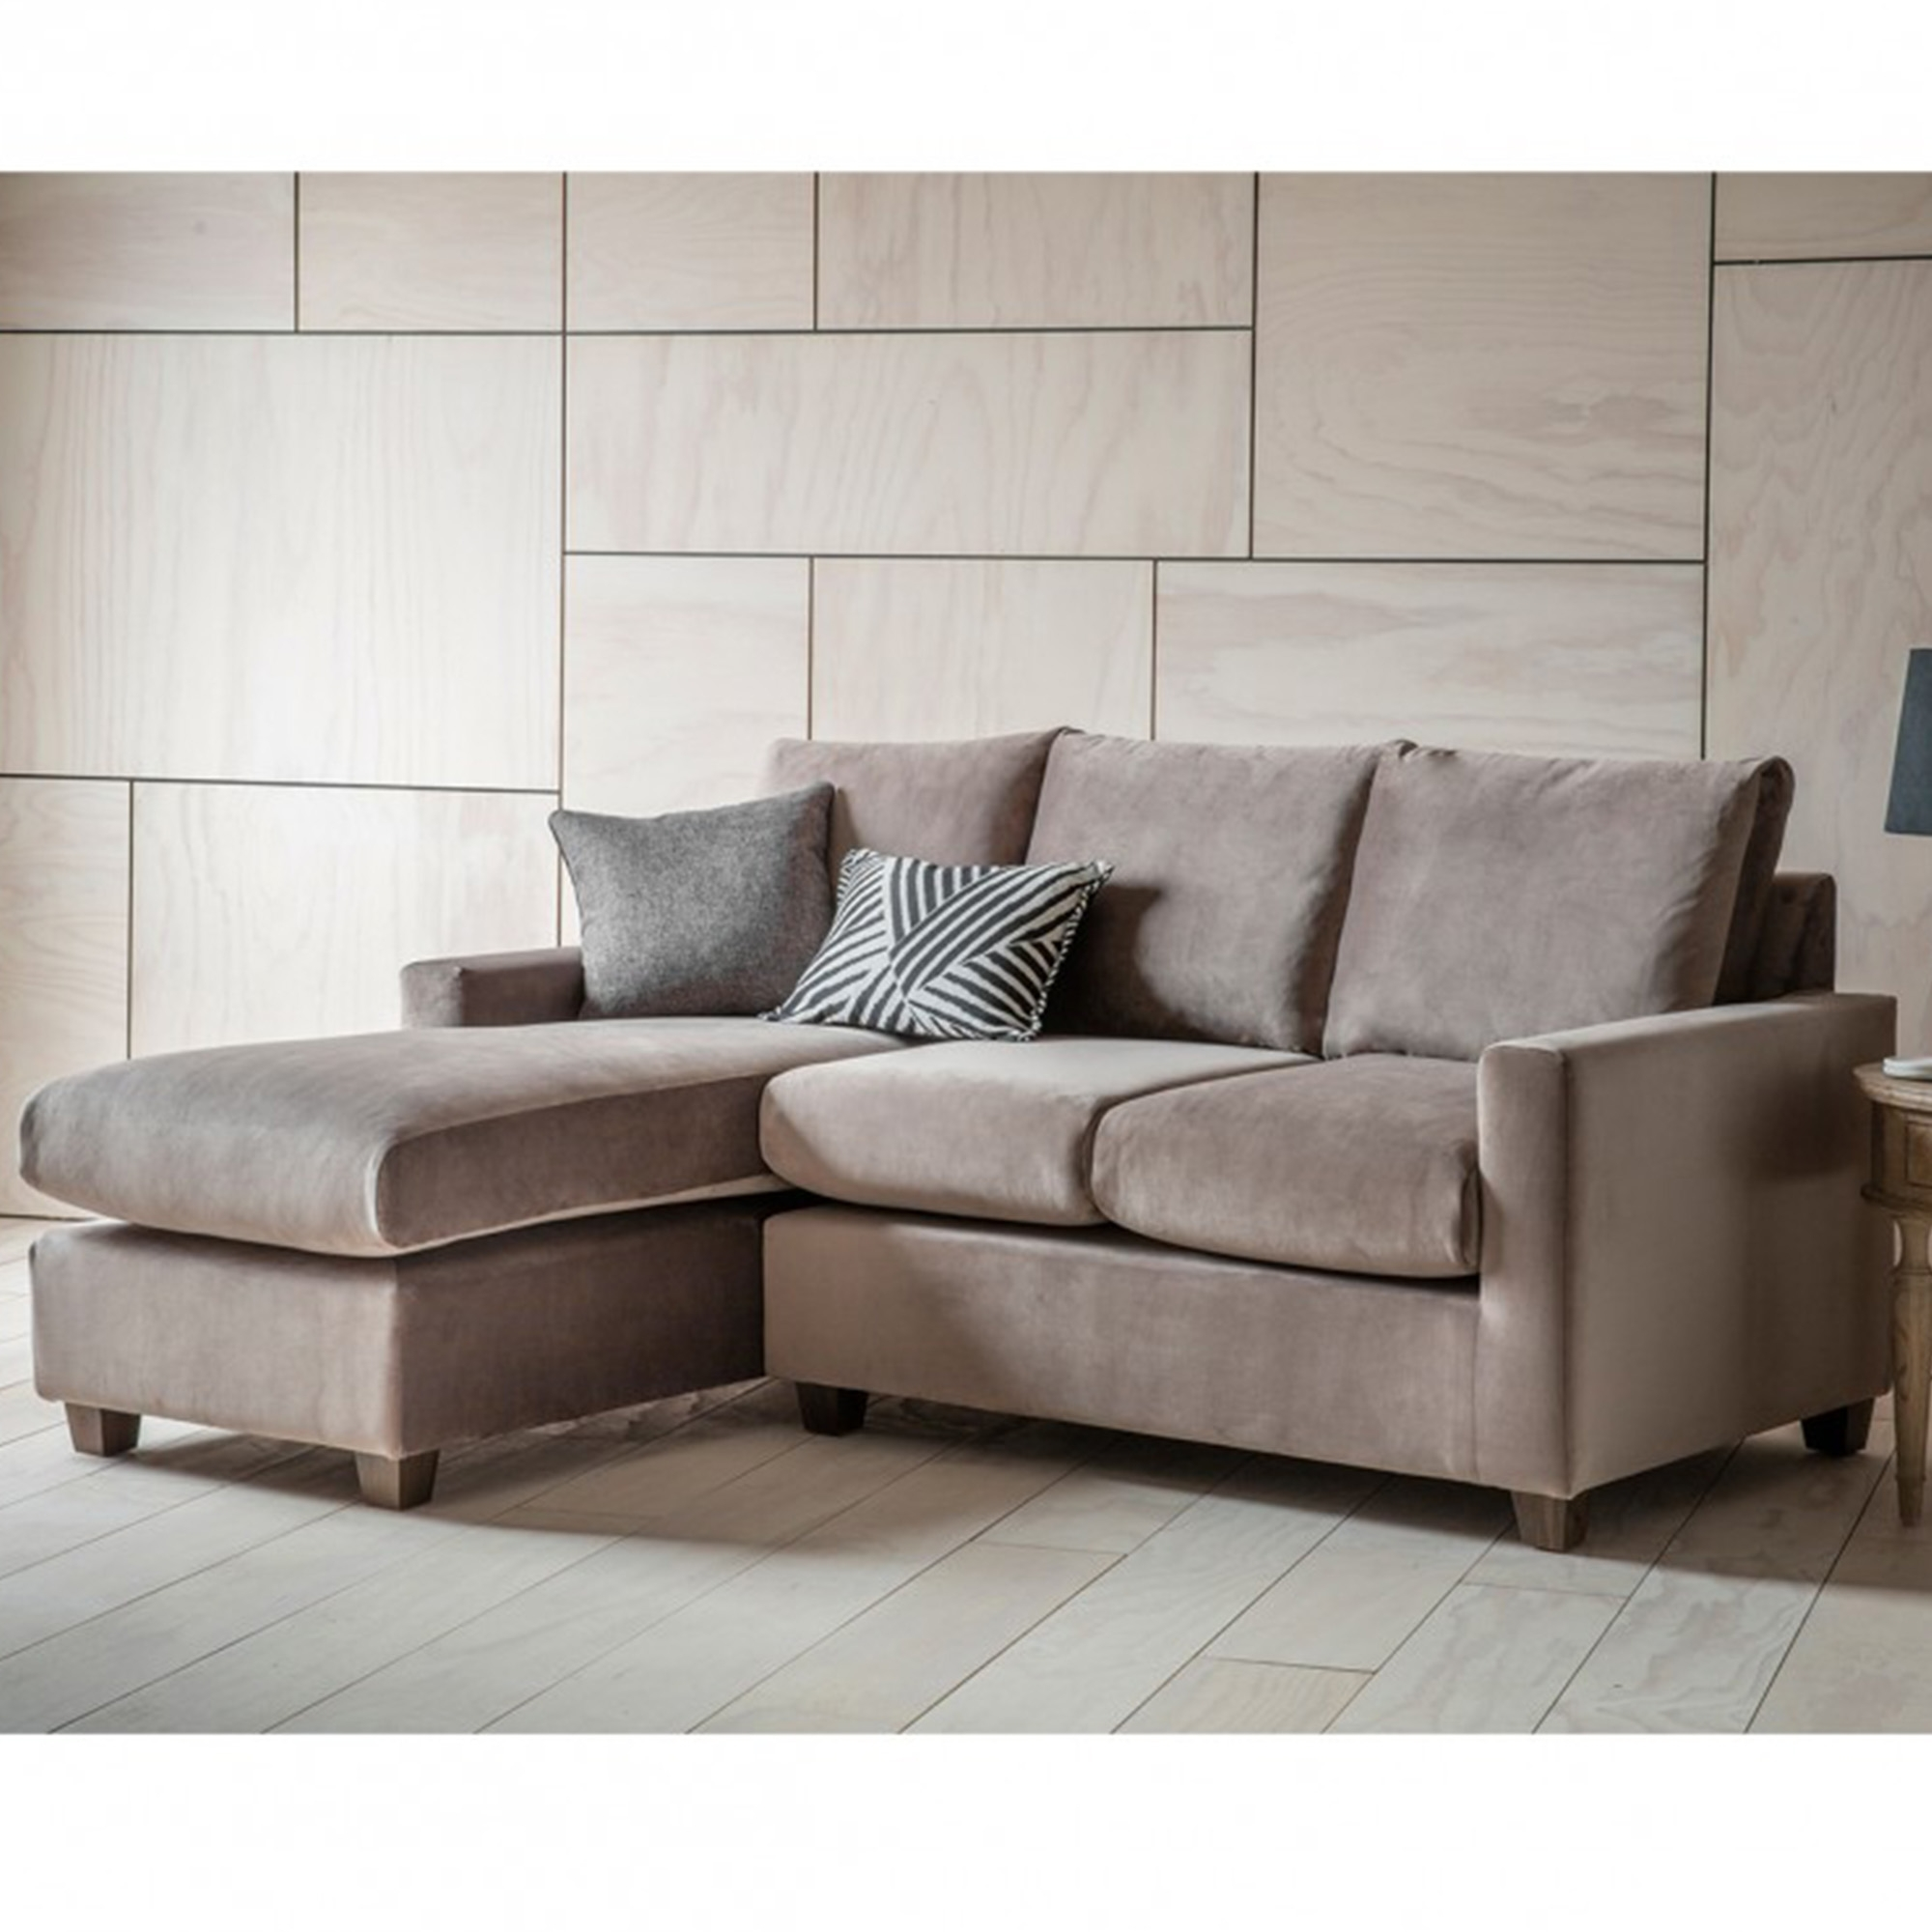 Brussels Taupe Stratford RH Chaise Sofa